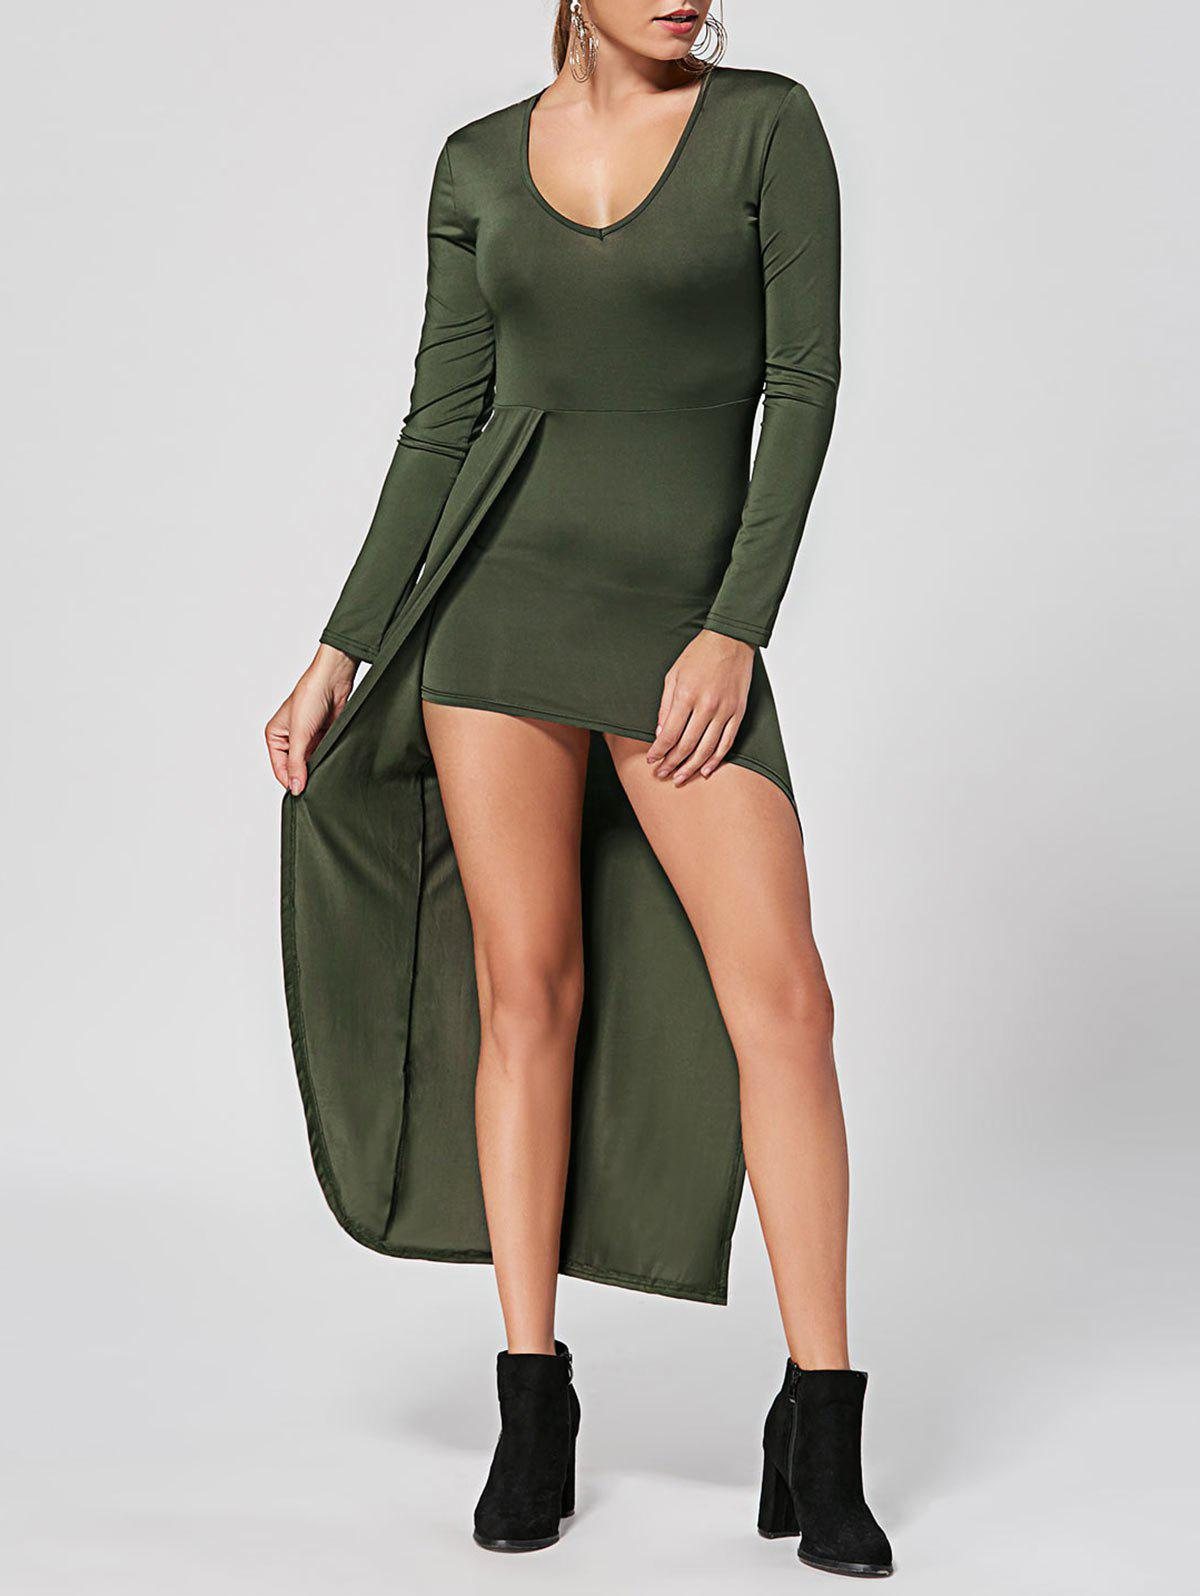 V Neck High Low Club Dress - Vert Armée S